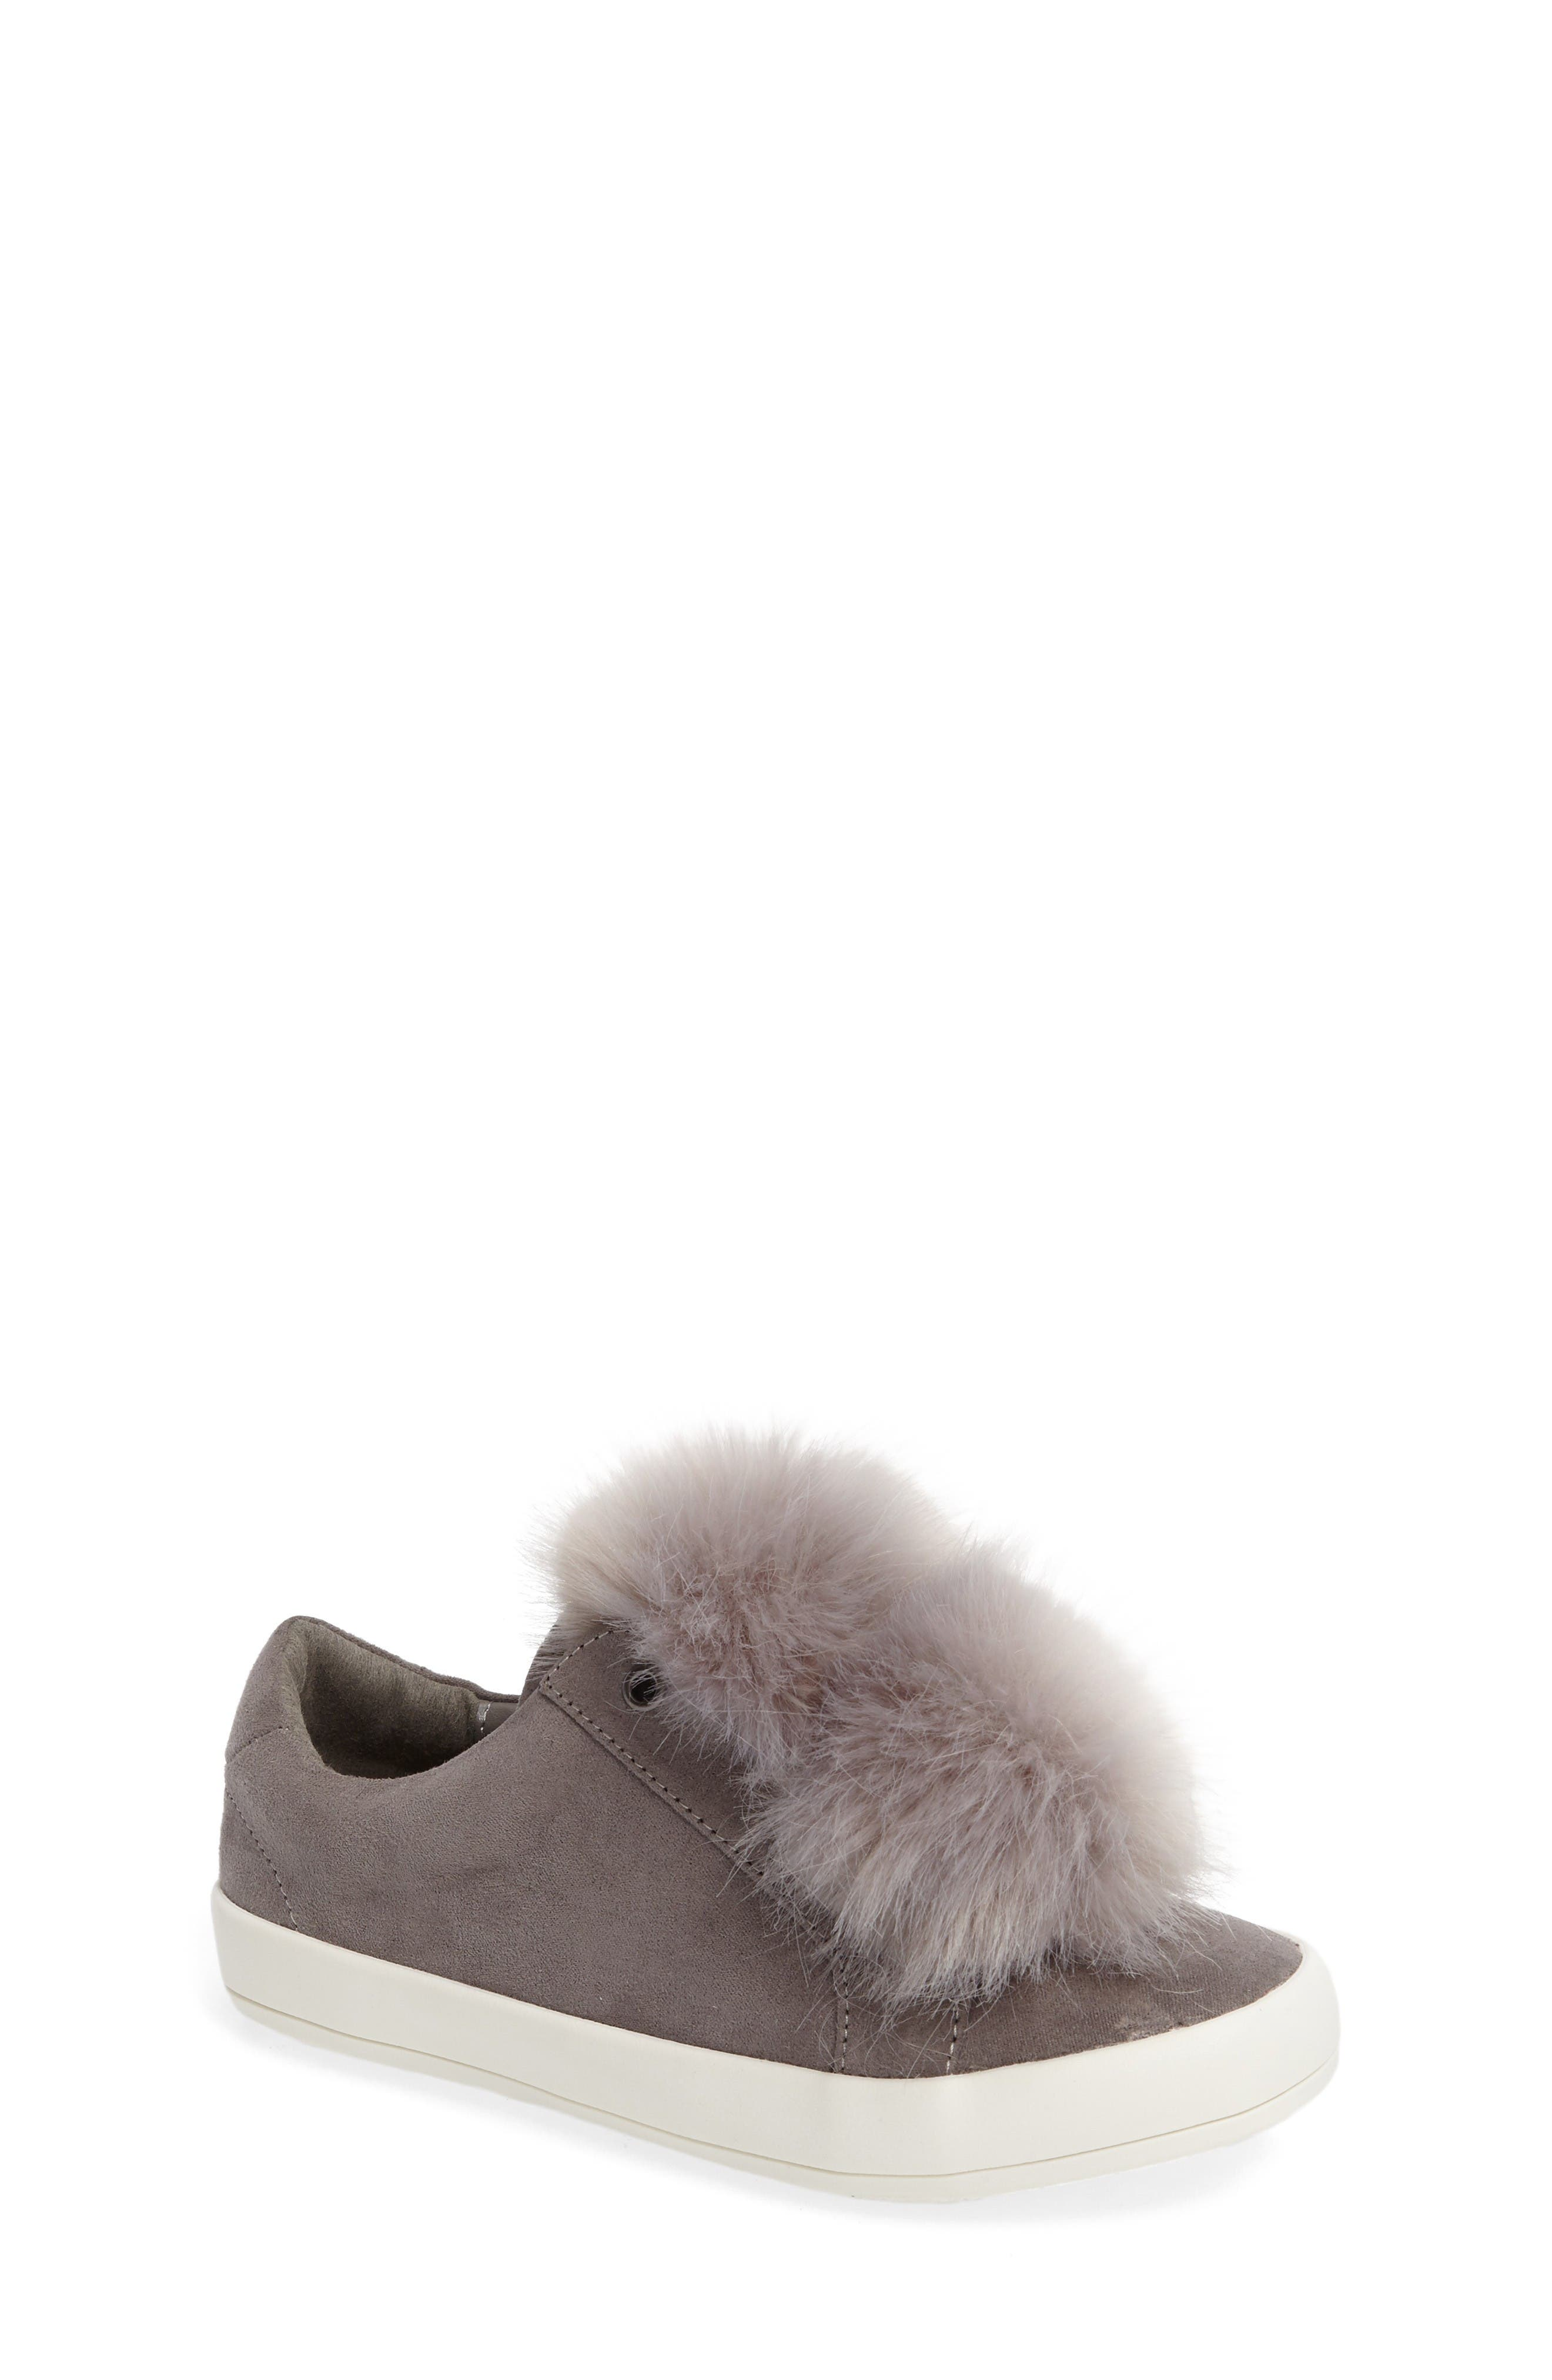 Sam Edelman Cynthia Leya Faux Fur Pompom Slip-On Sneaker (Toddler, Little Kid & Big Kid)